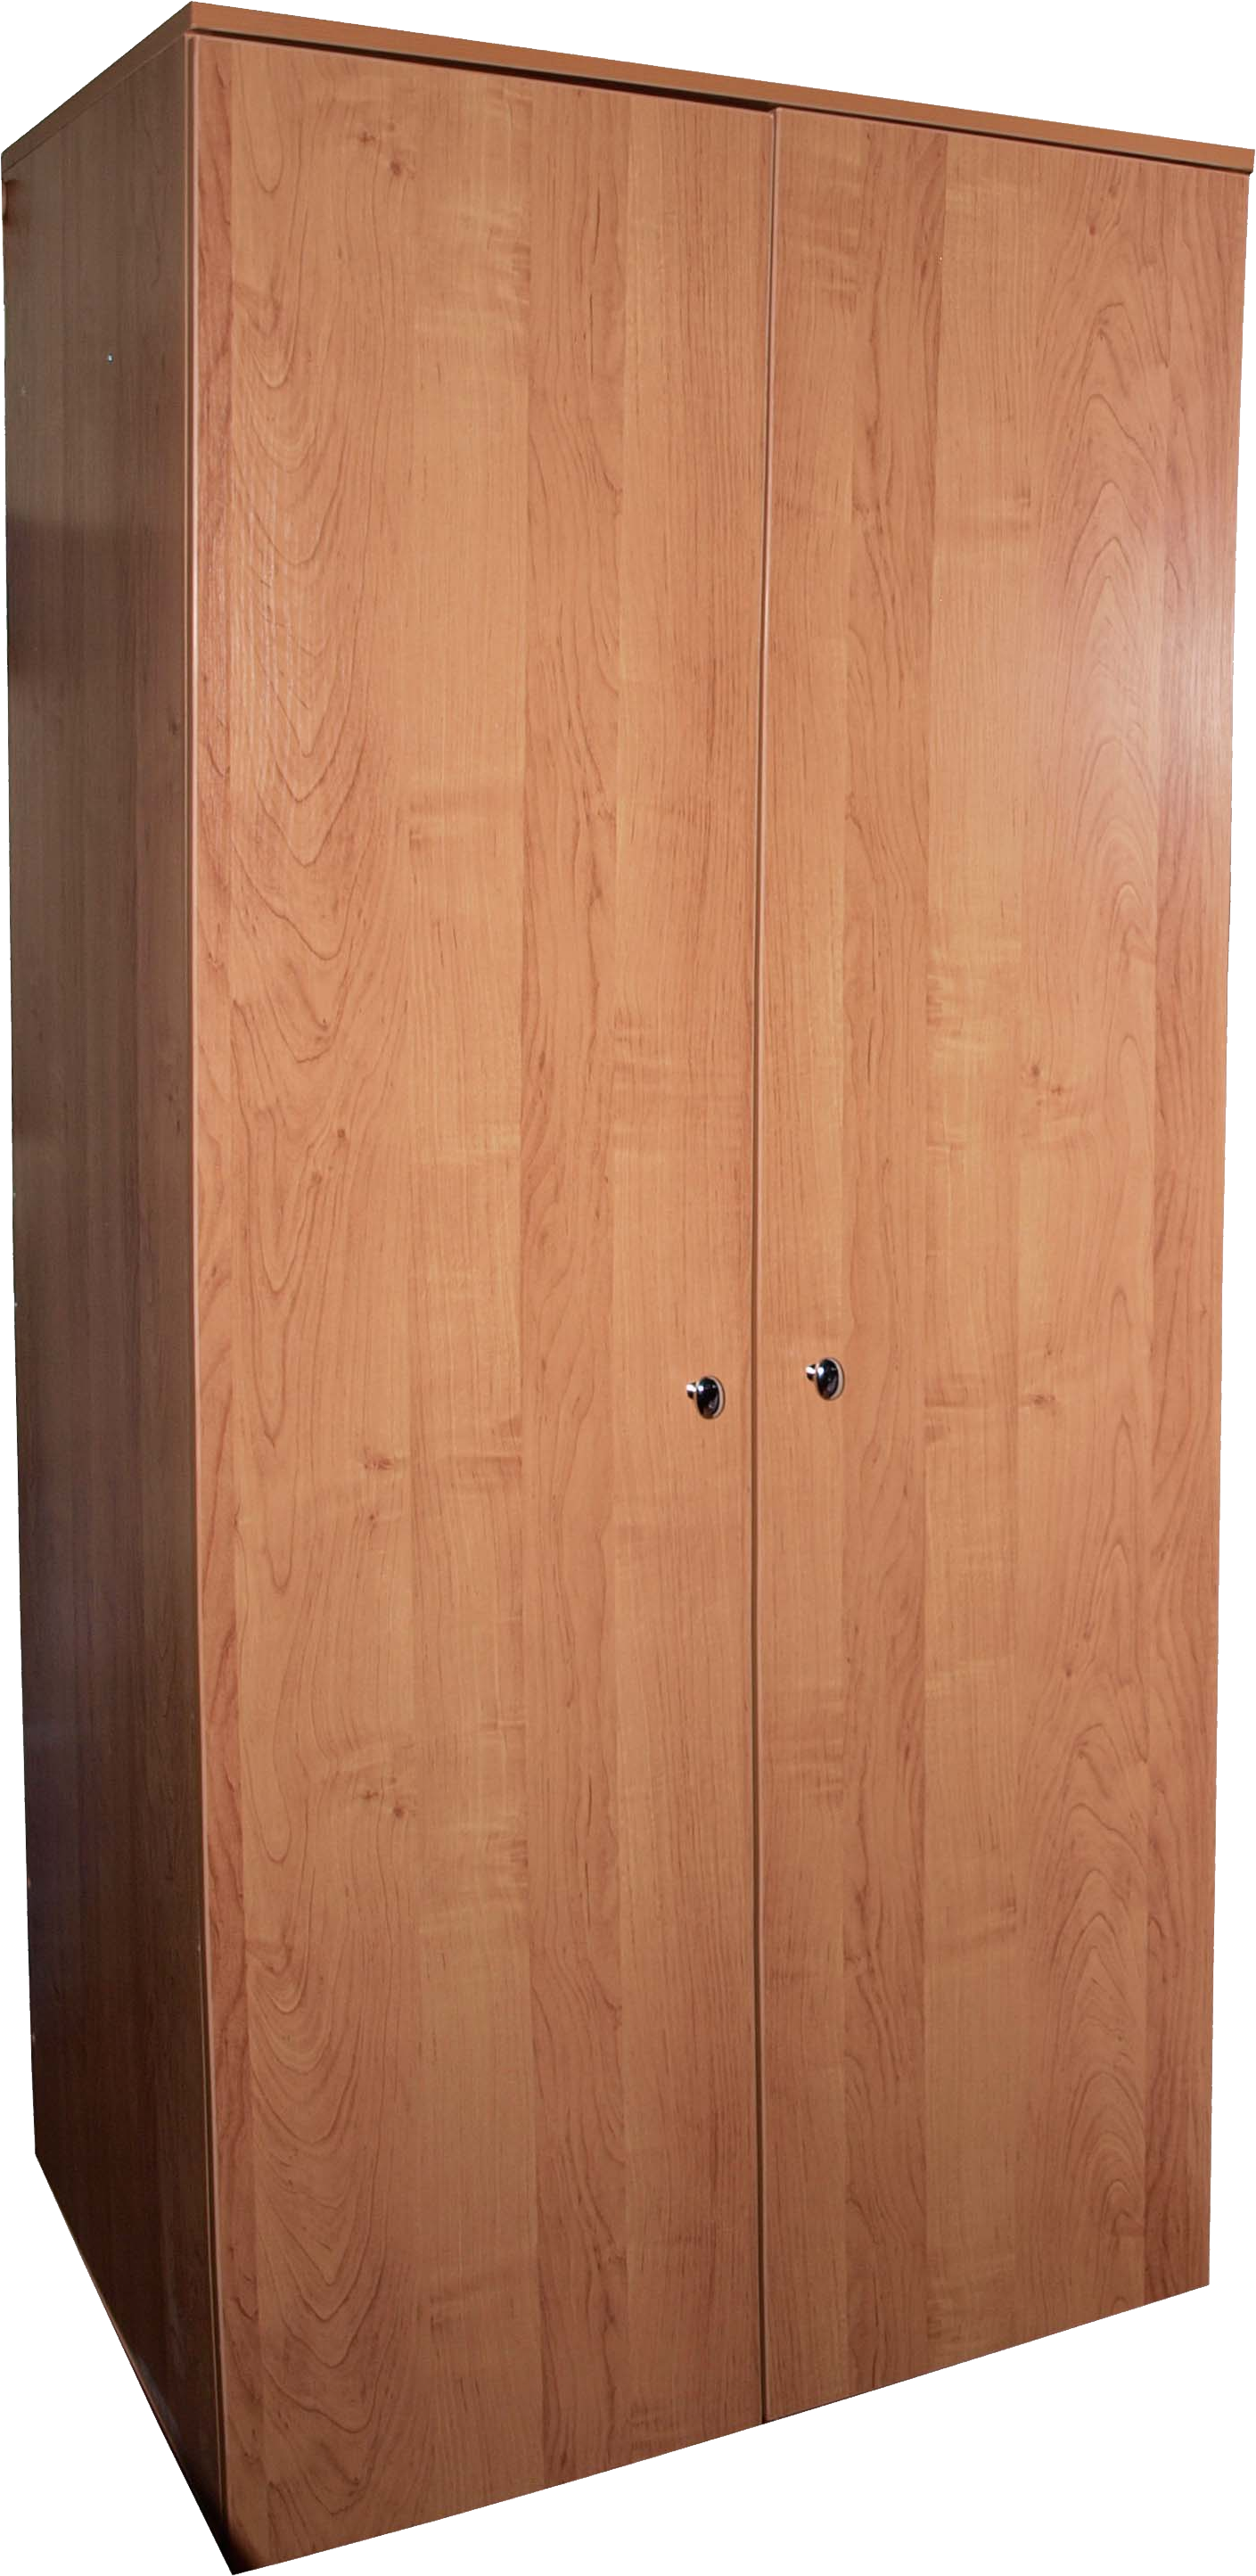 picture transparent library Cupboard png picture web. Closet clipart background.